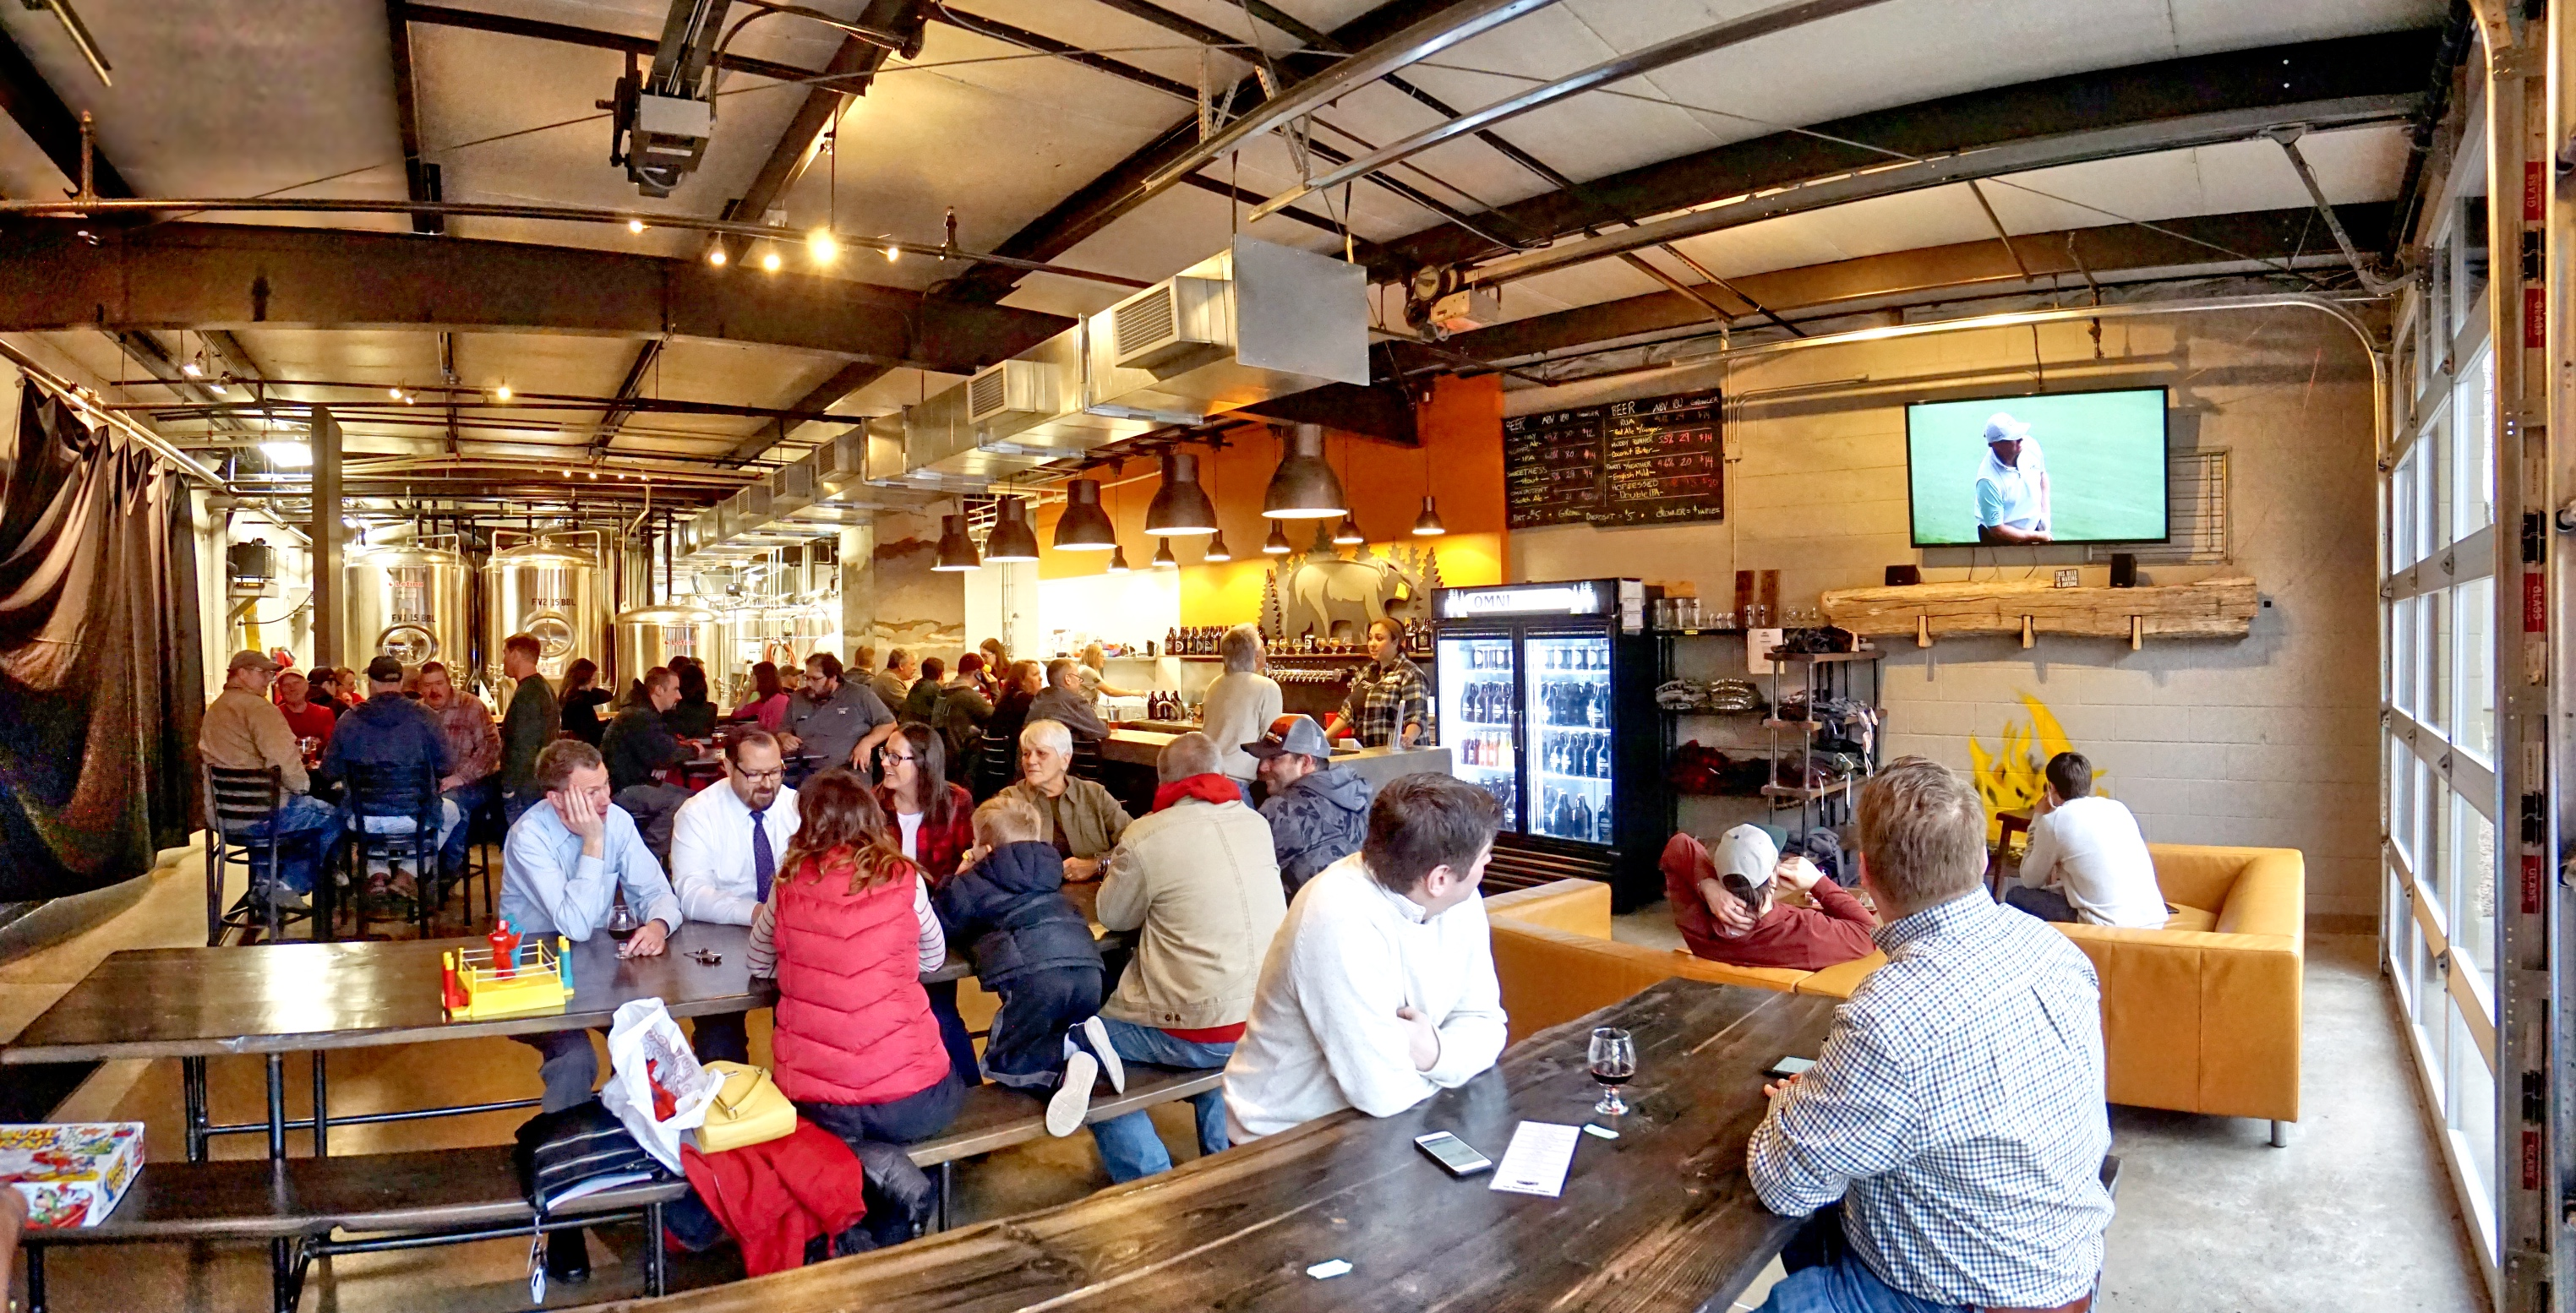 Crowd of people at OMNI Brewing